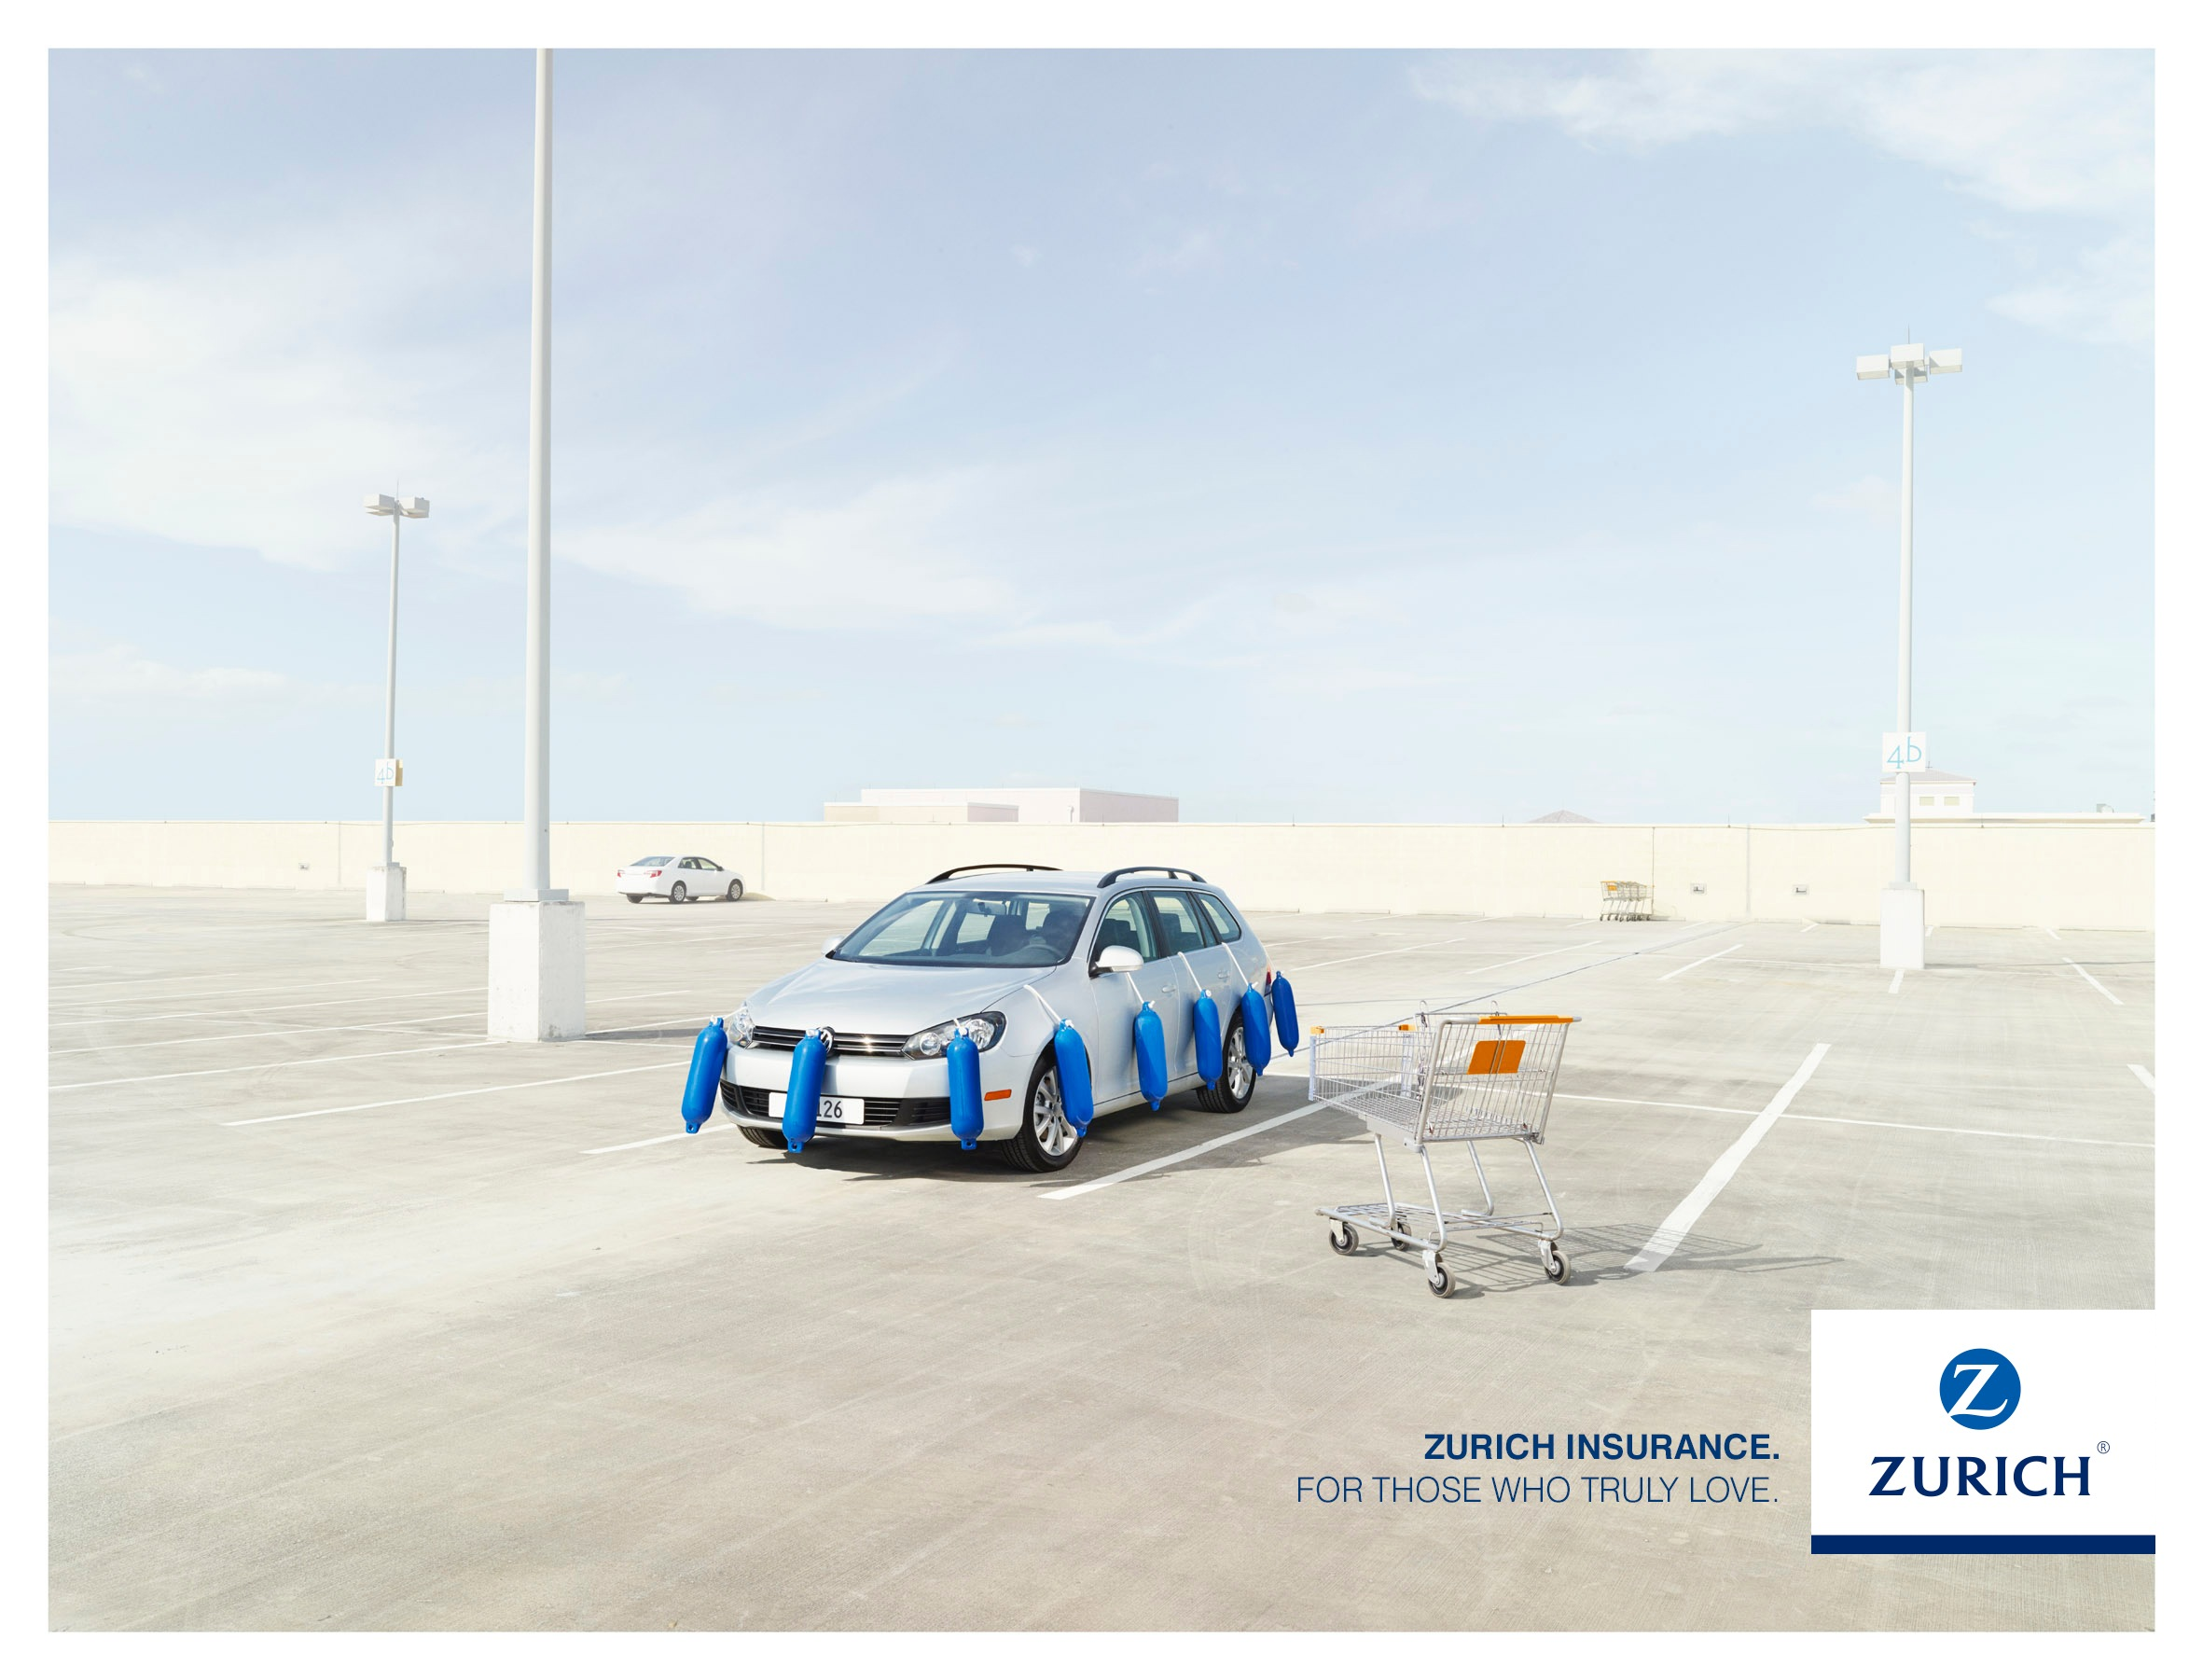 Zurich Print Advert By McCann: Car protection | Ads of the ...